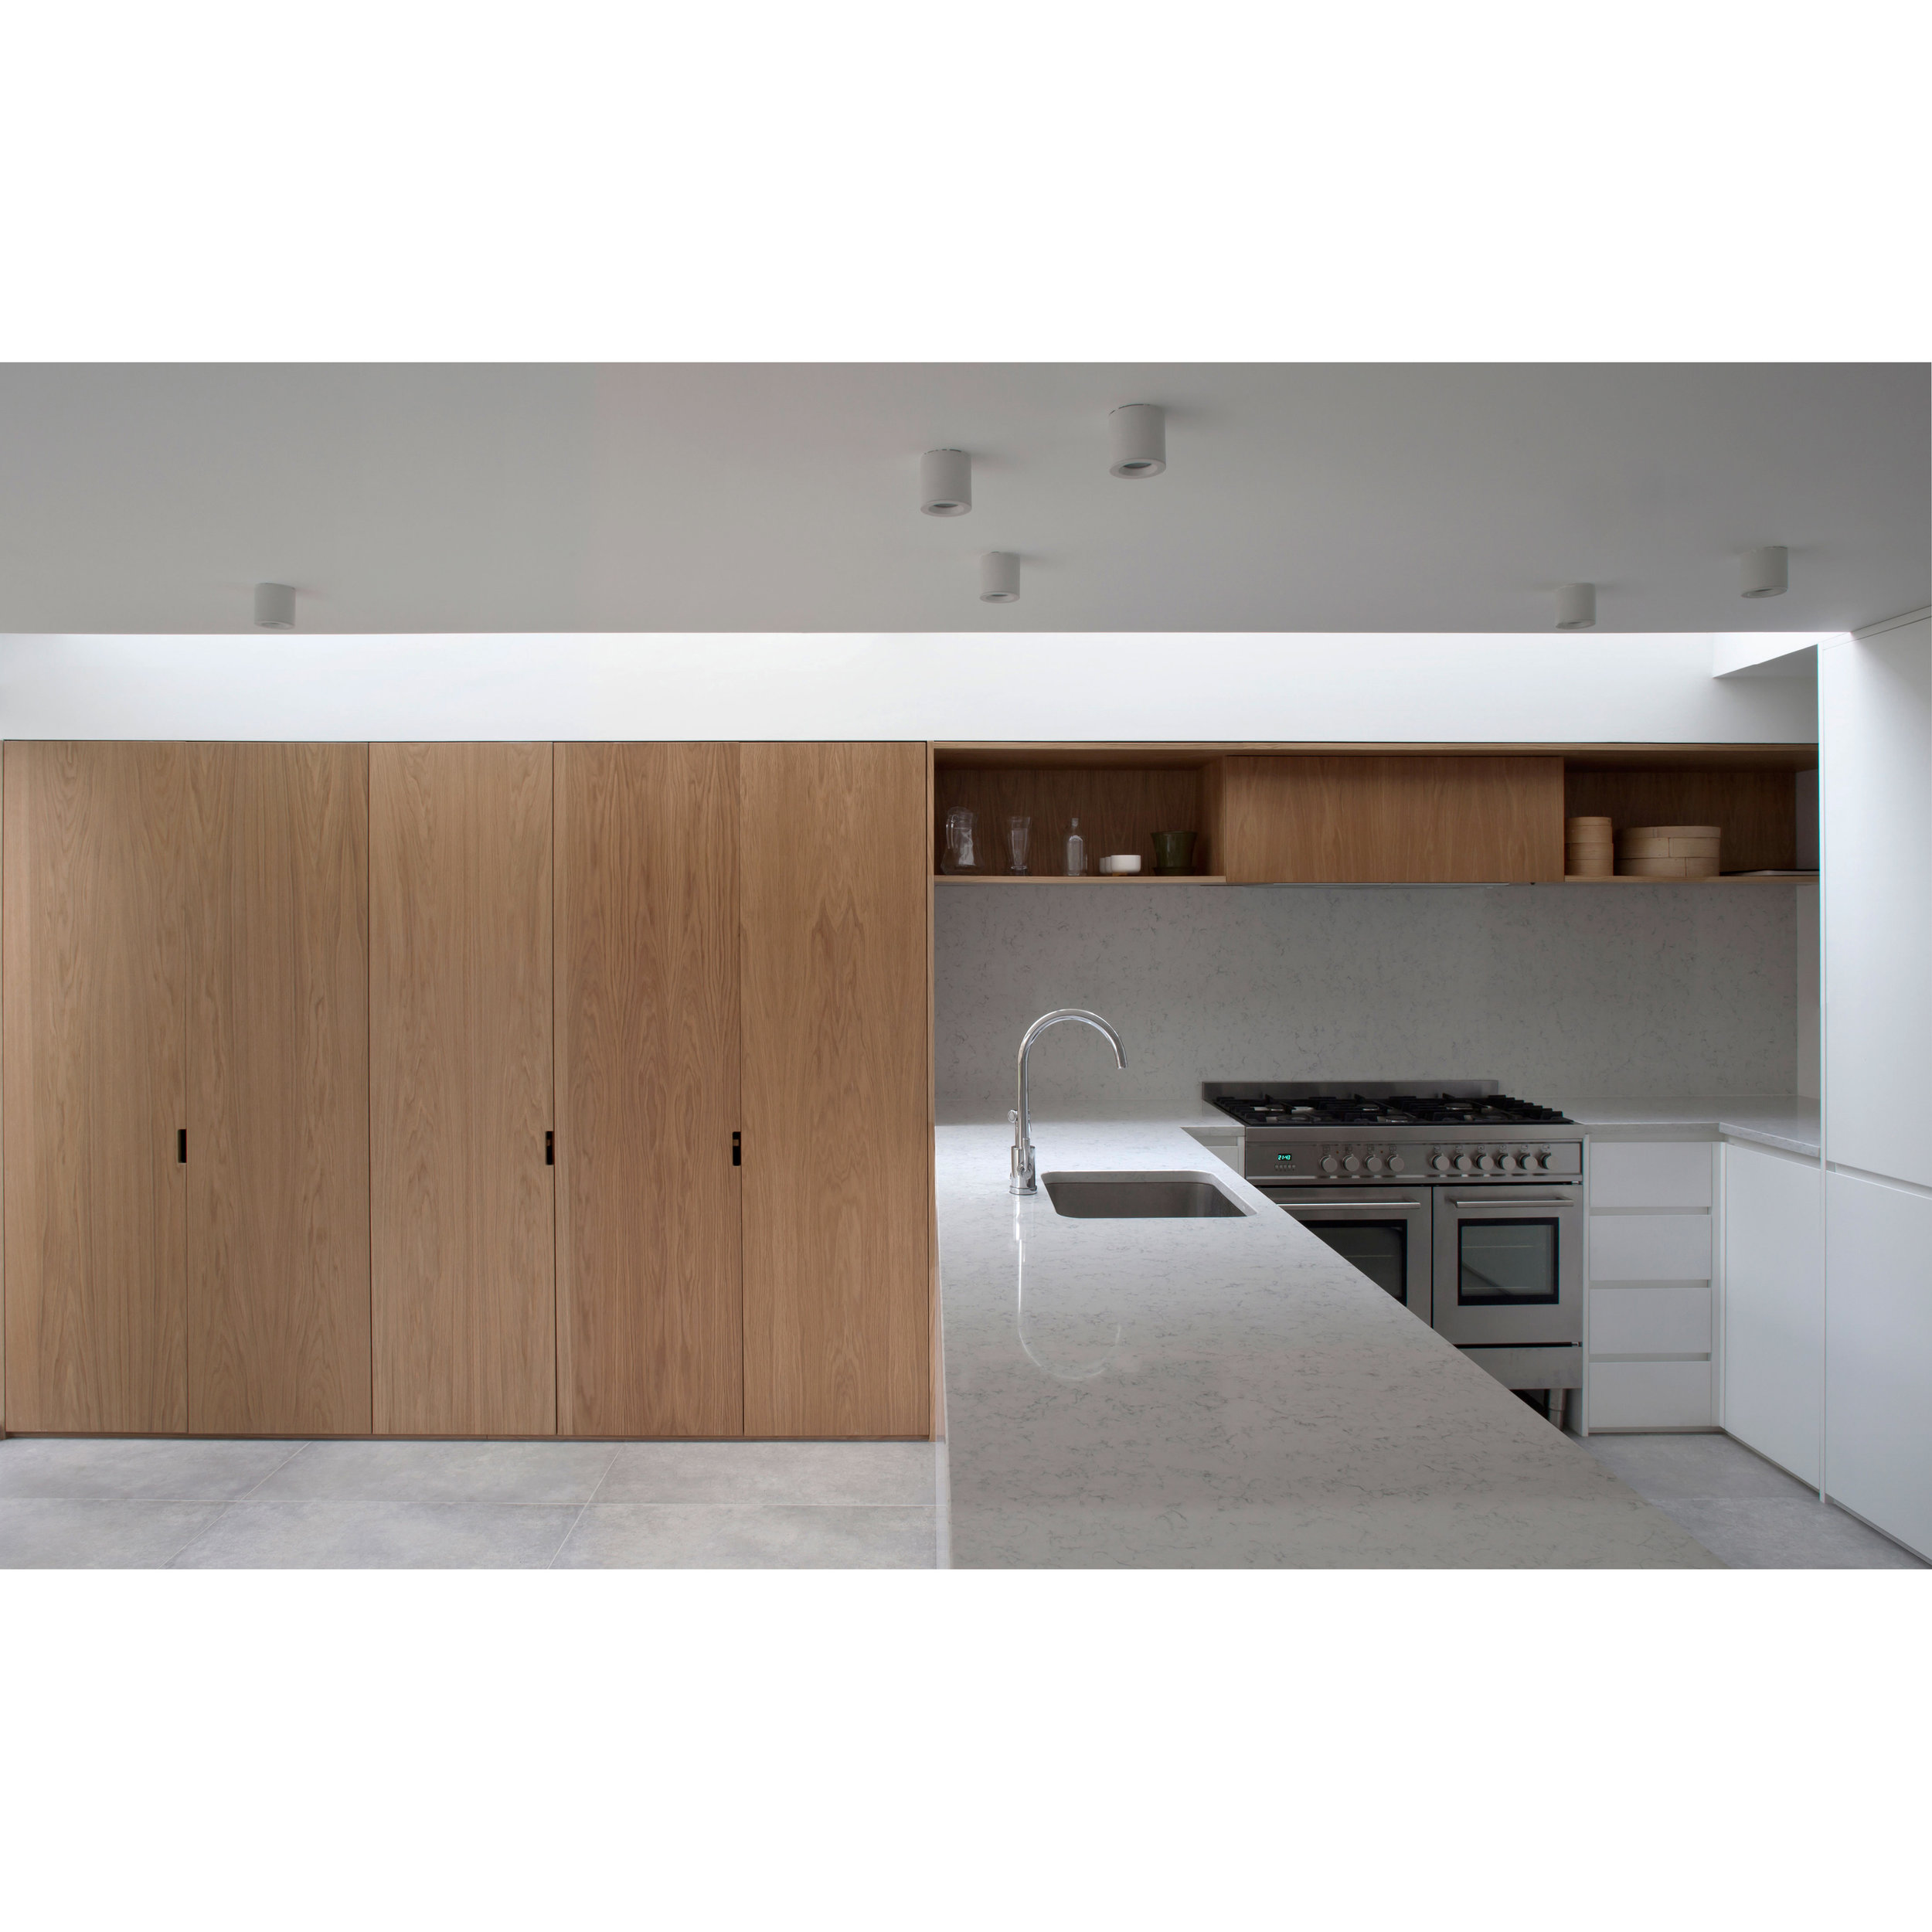 MOCT STUDIO---View-towards-new-side-extension,-kitchen-and-storage-wall-square.jpg